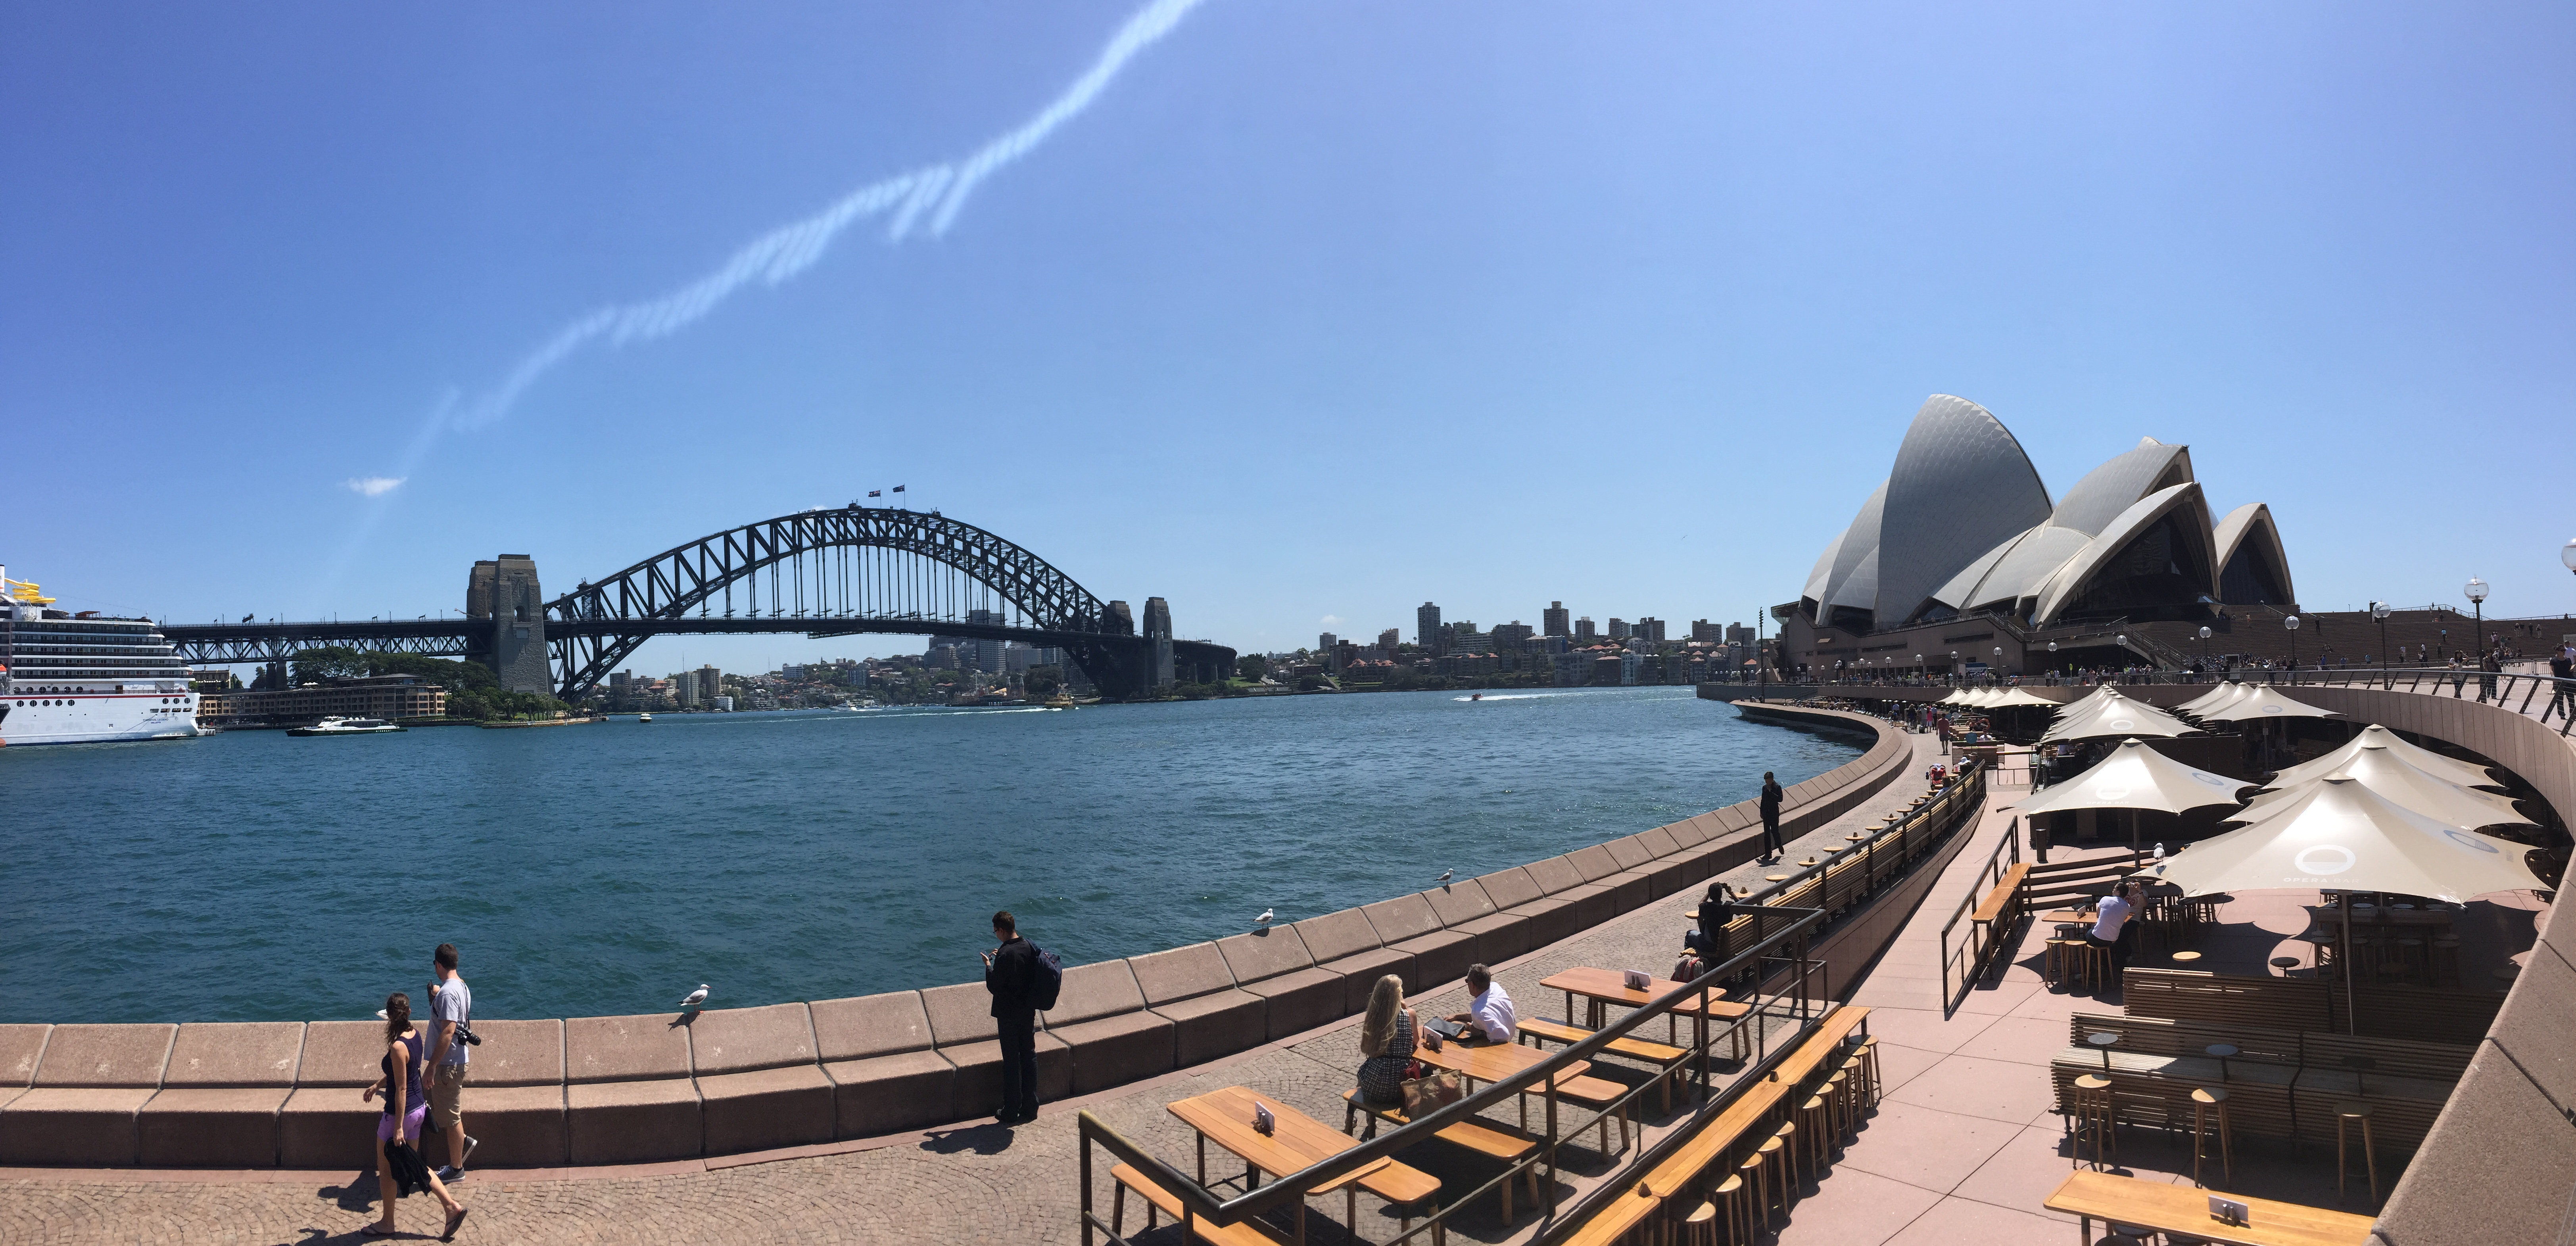 Panoramic view of the Sydney Opera House